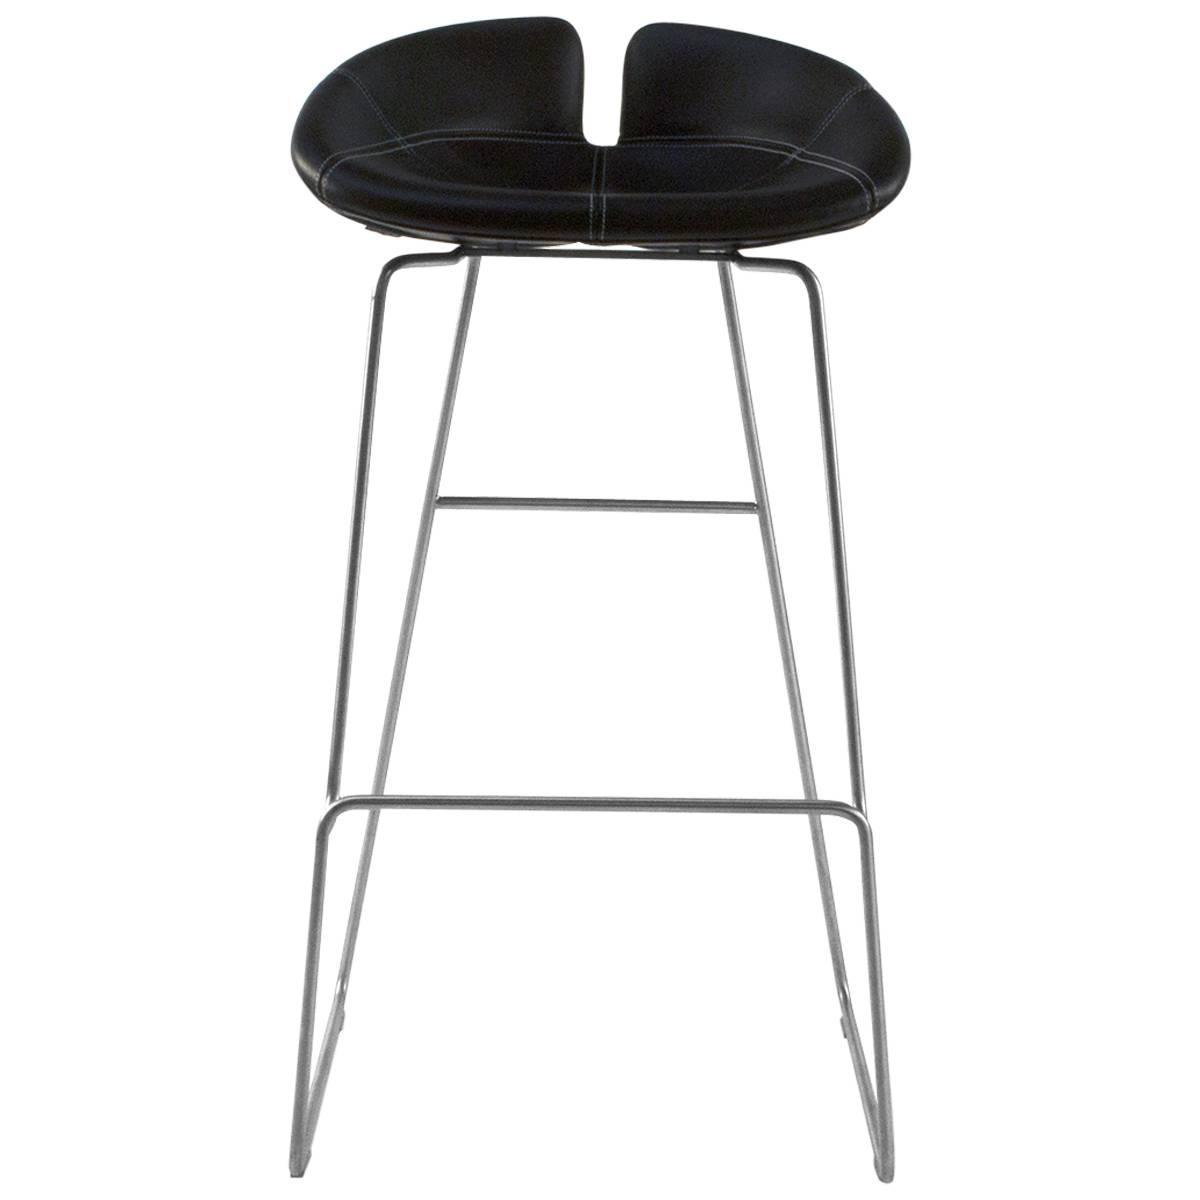 Moroso Black Leather Fjord High Bar Stool By Patricia